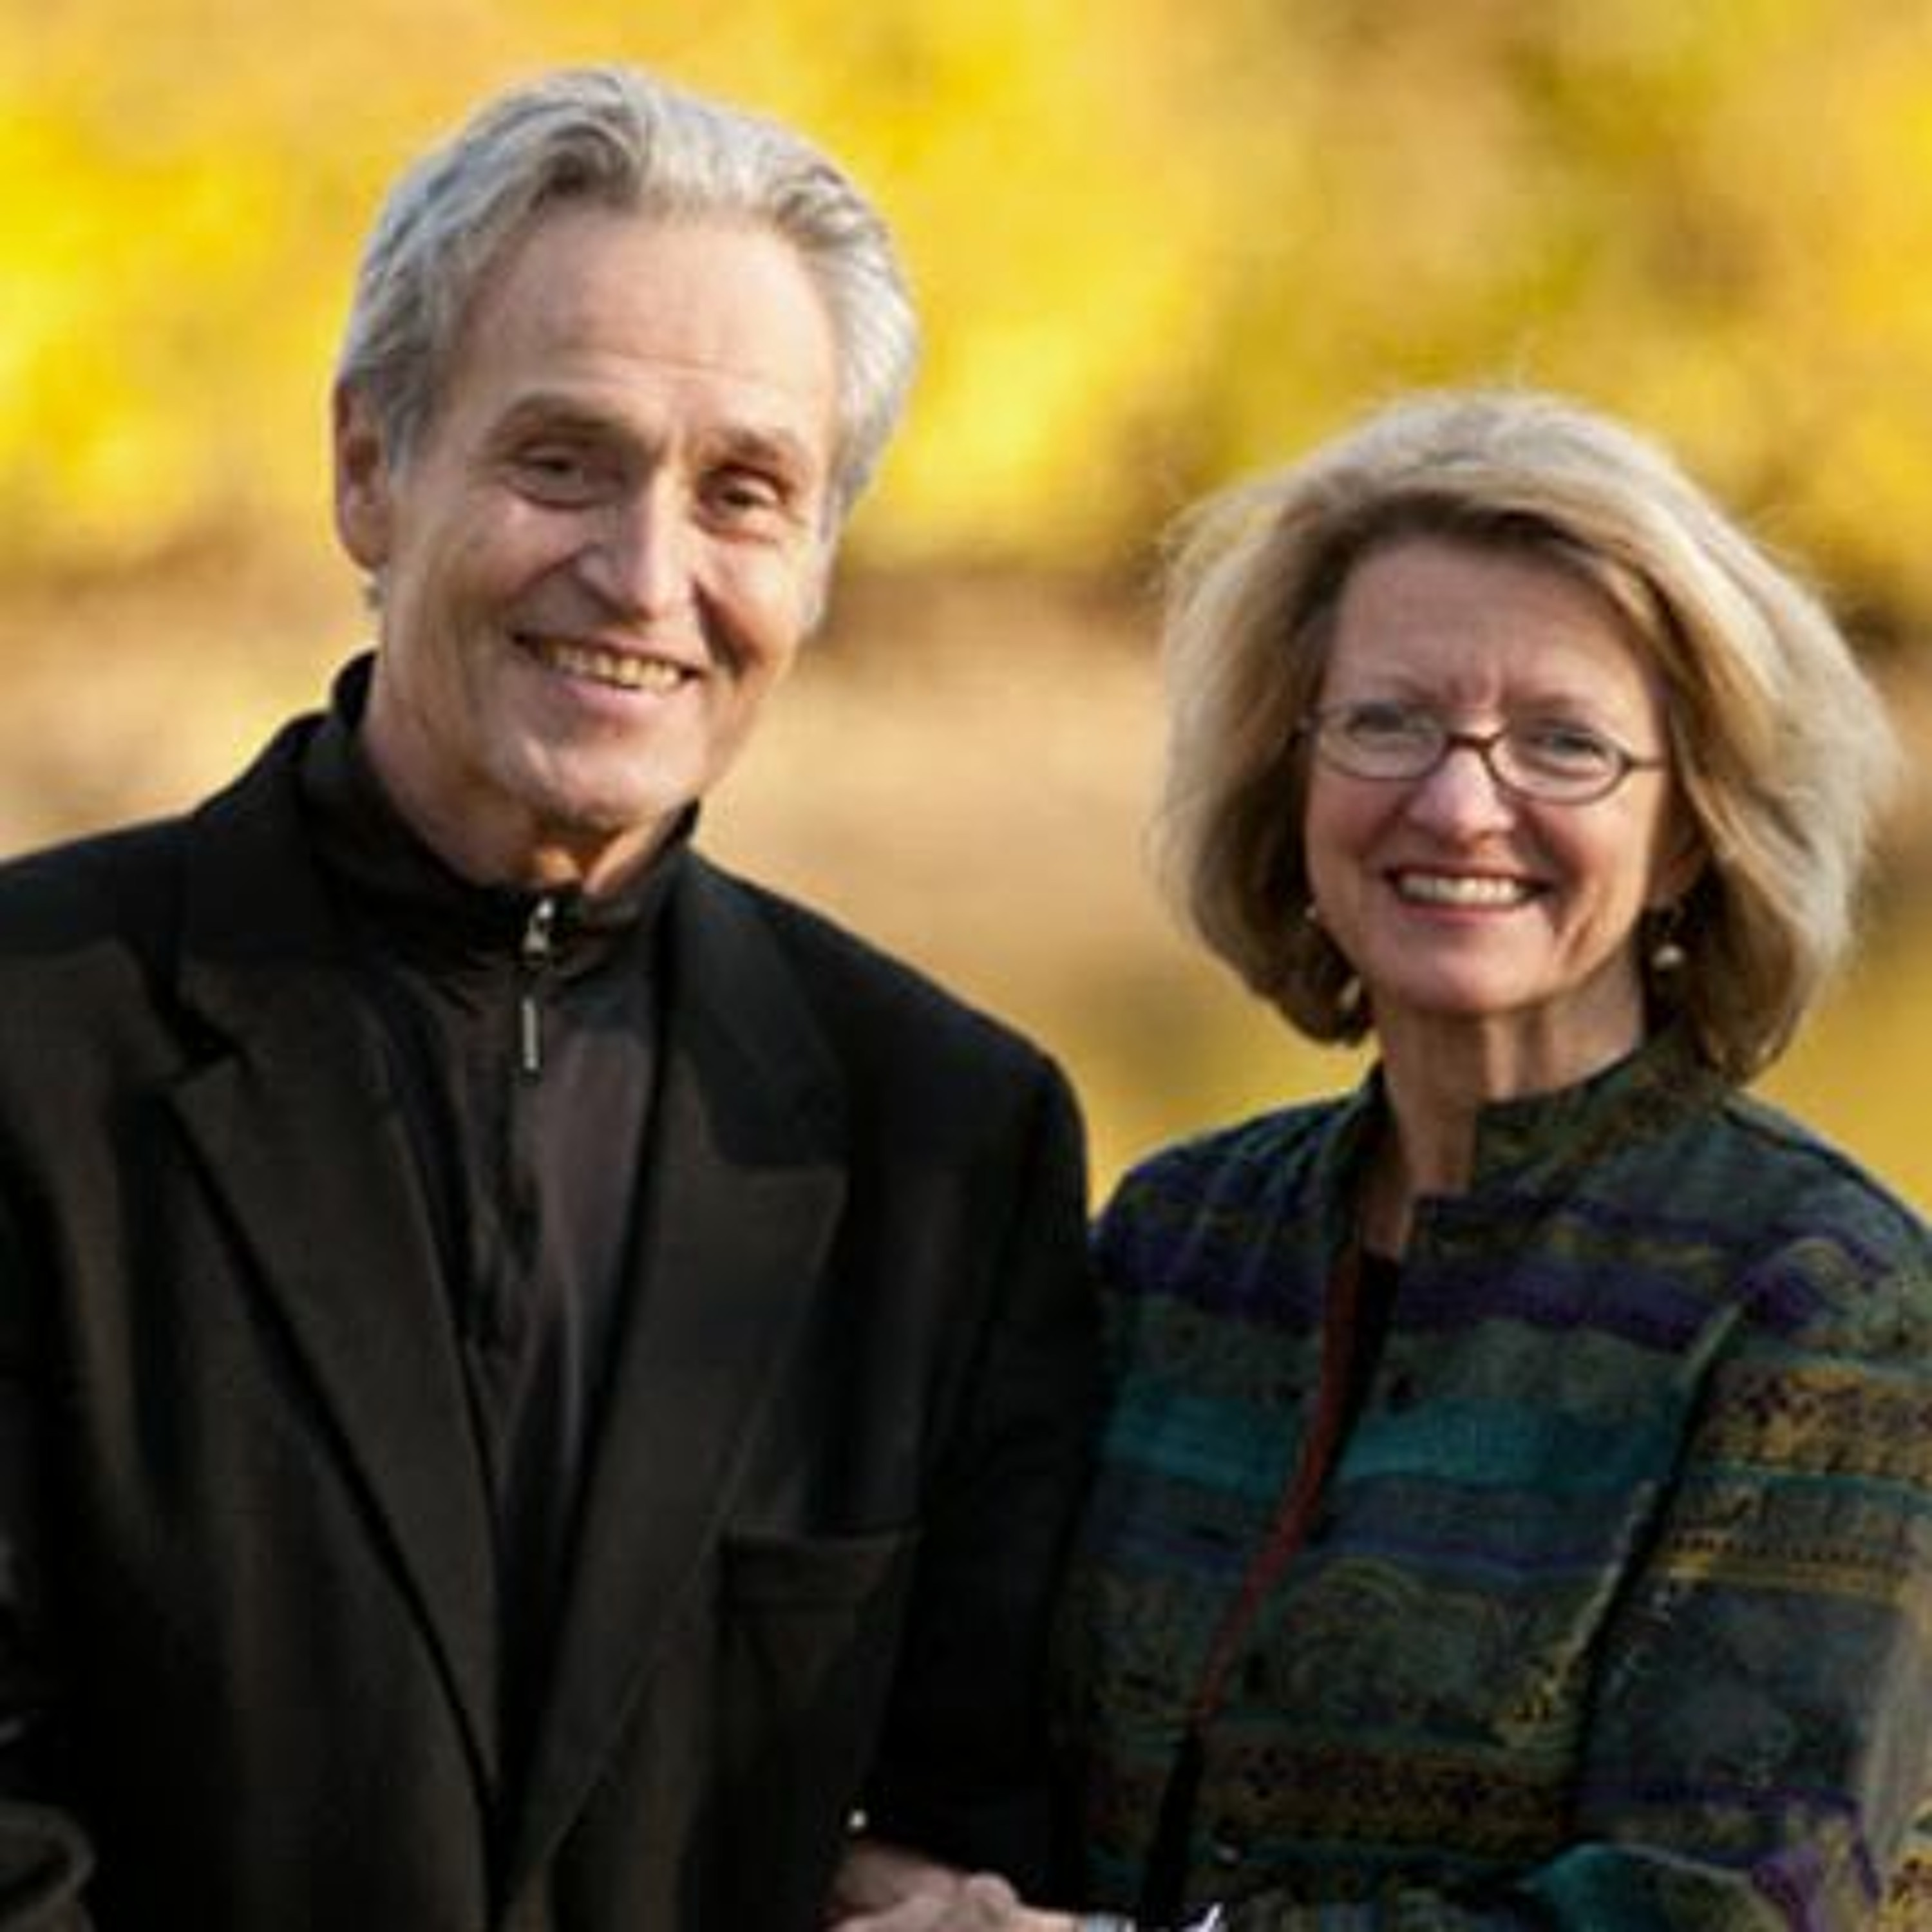 The Art of Convening with Craig and Patricia Neal